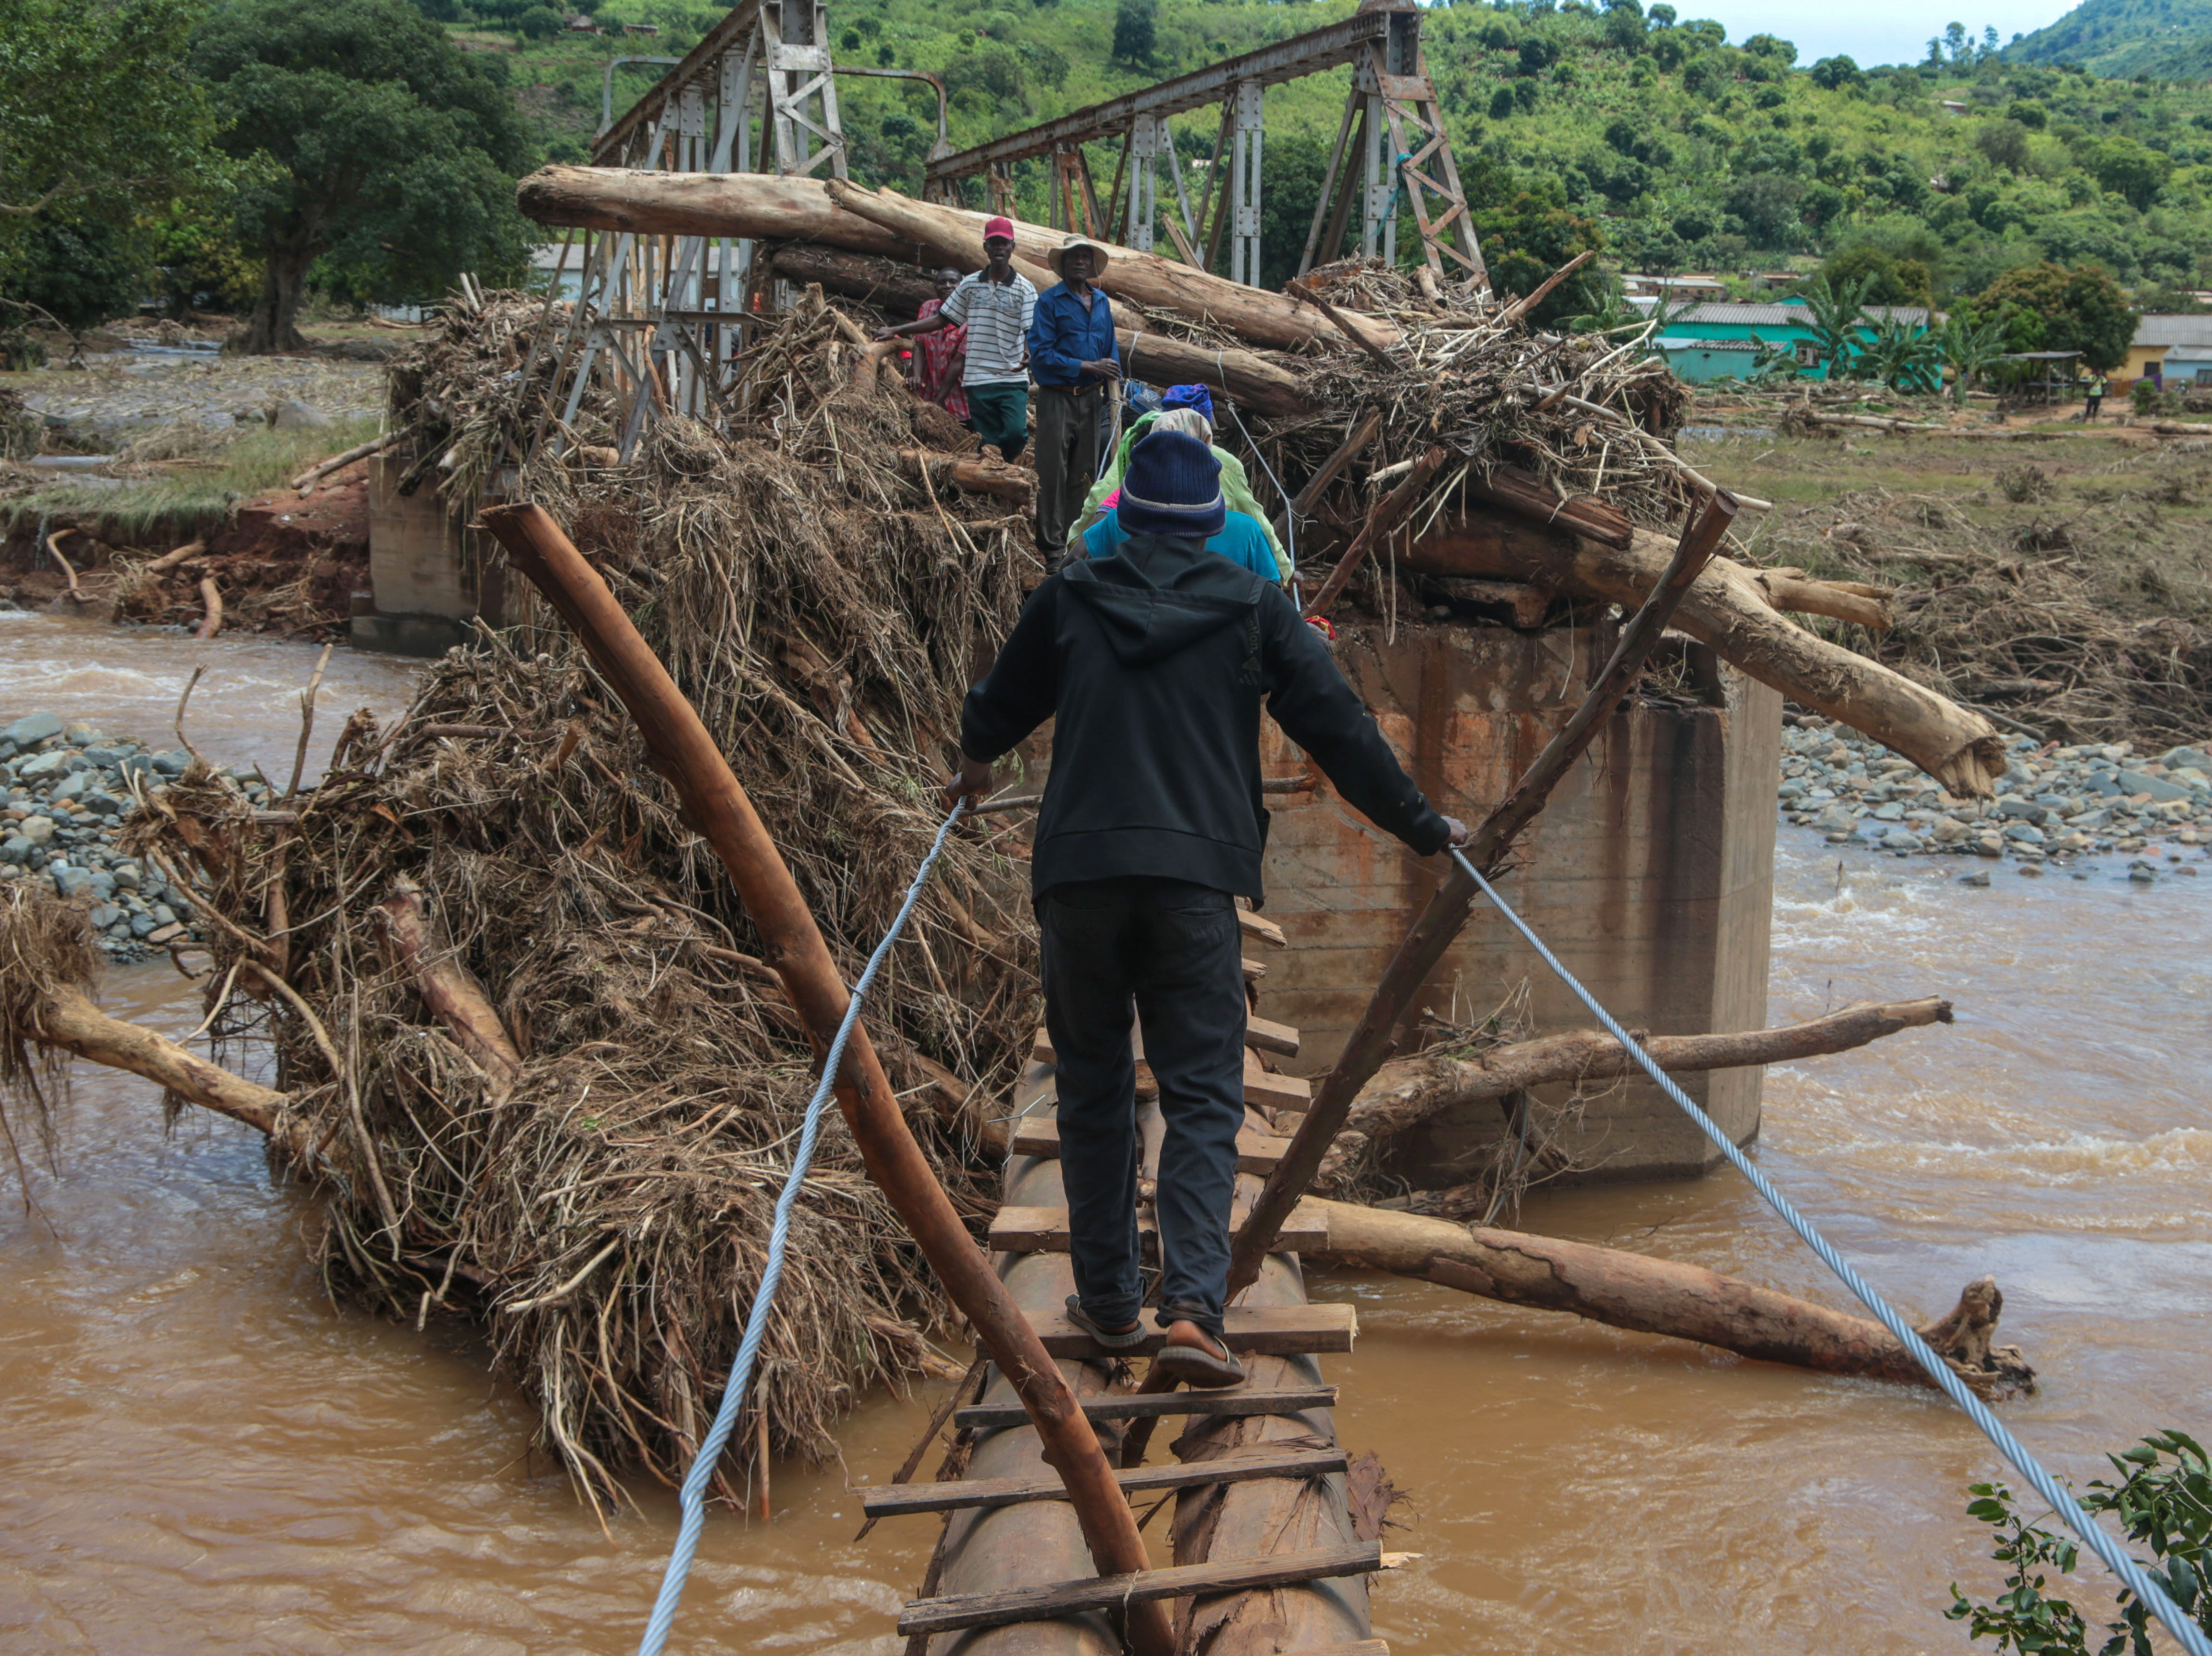 Civilians cross a makeshift bridge over a river that surged days earlier during Cyclone Idai in Chipinge, Zimbabwe.